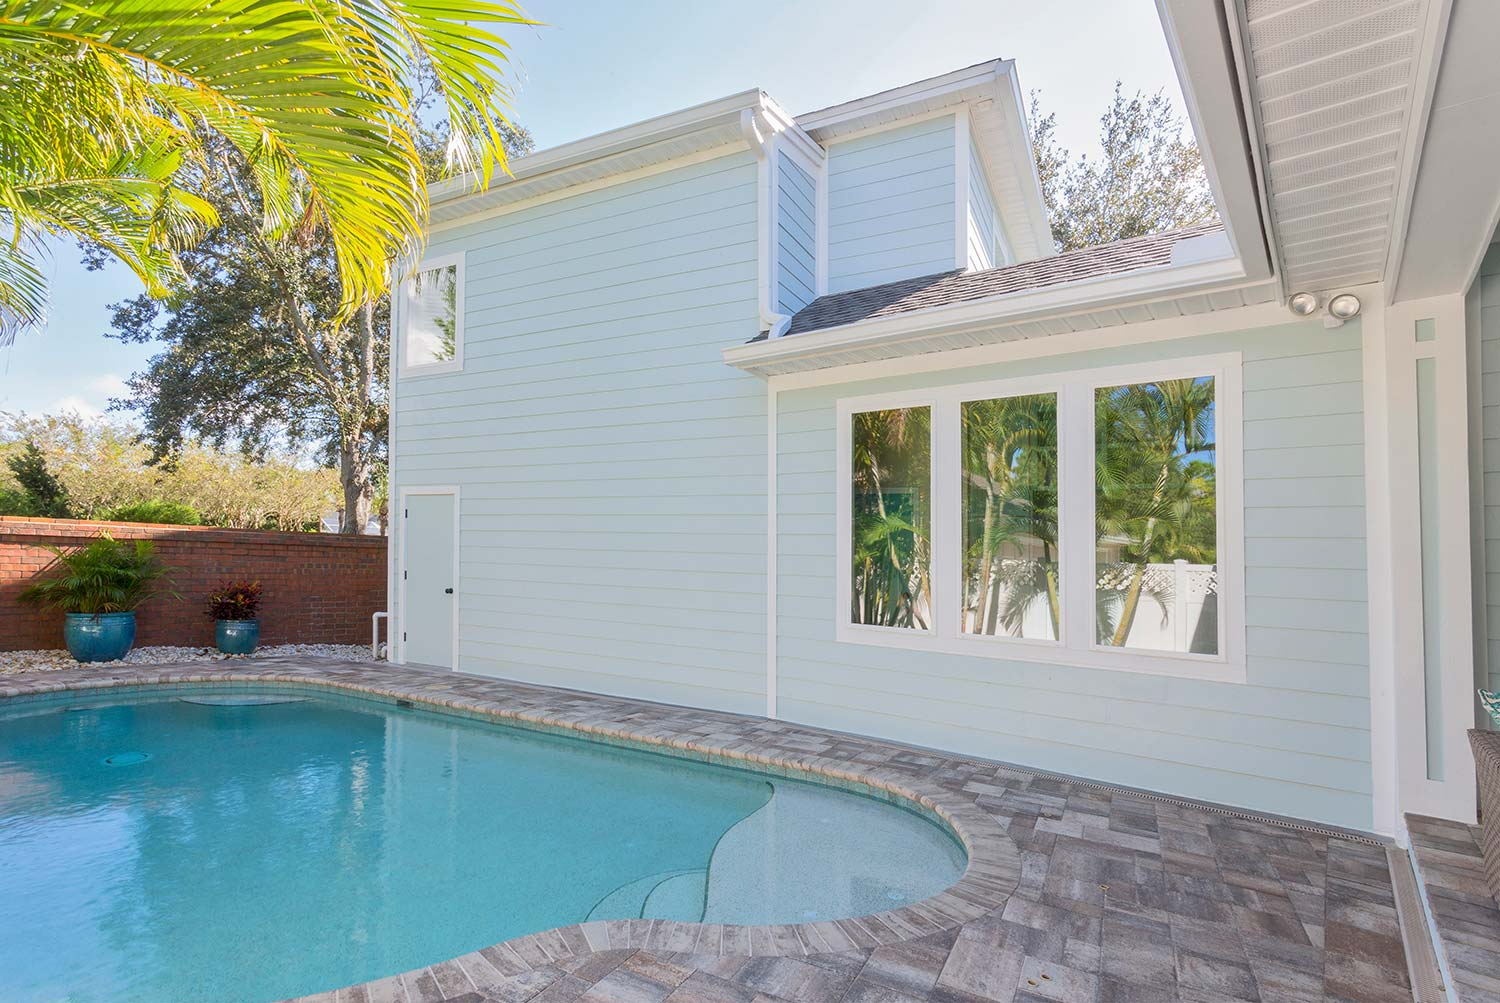 Home Addition Add On in Palm Harbor Florida by Golden Construction Services